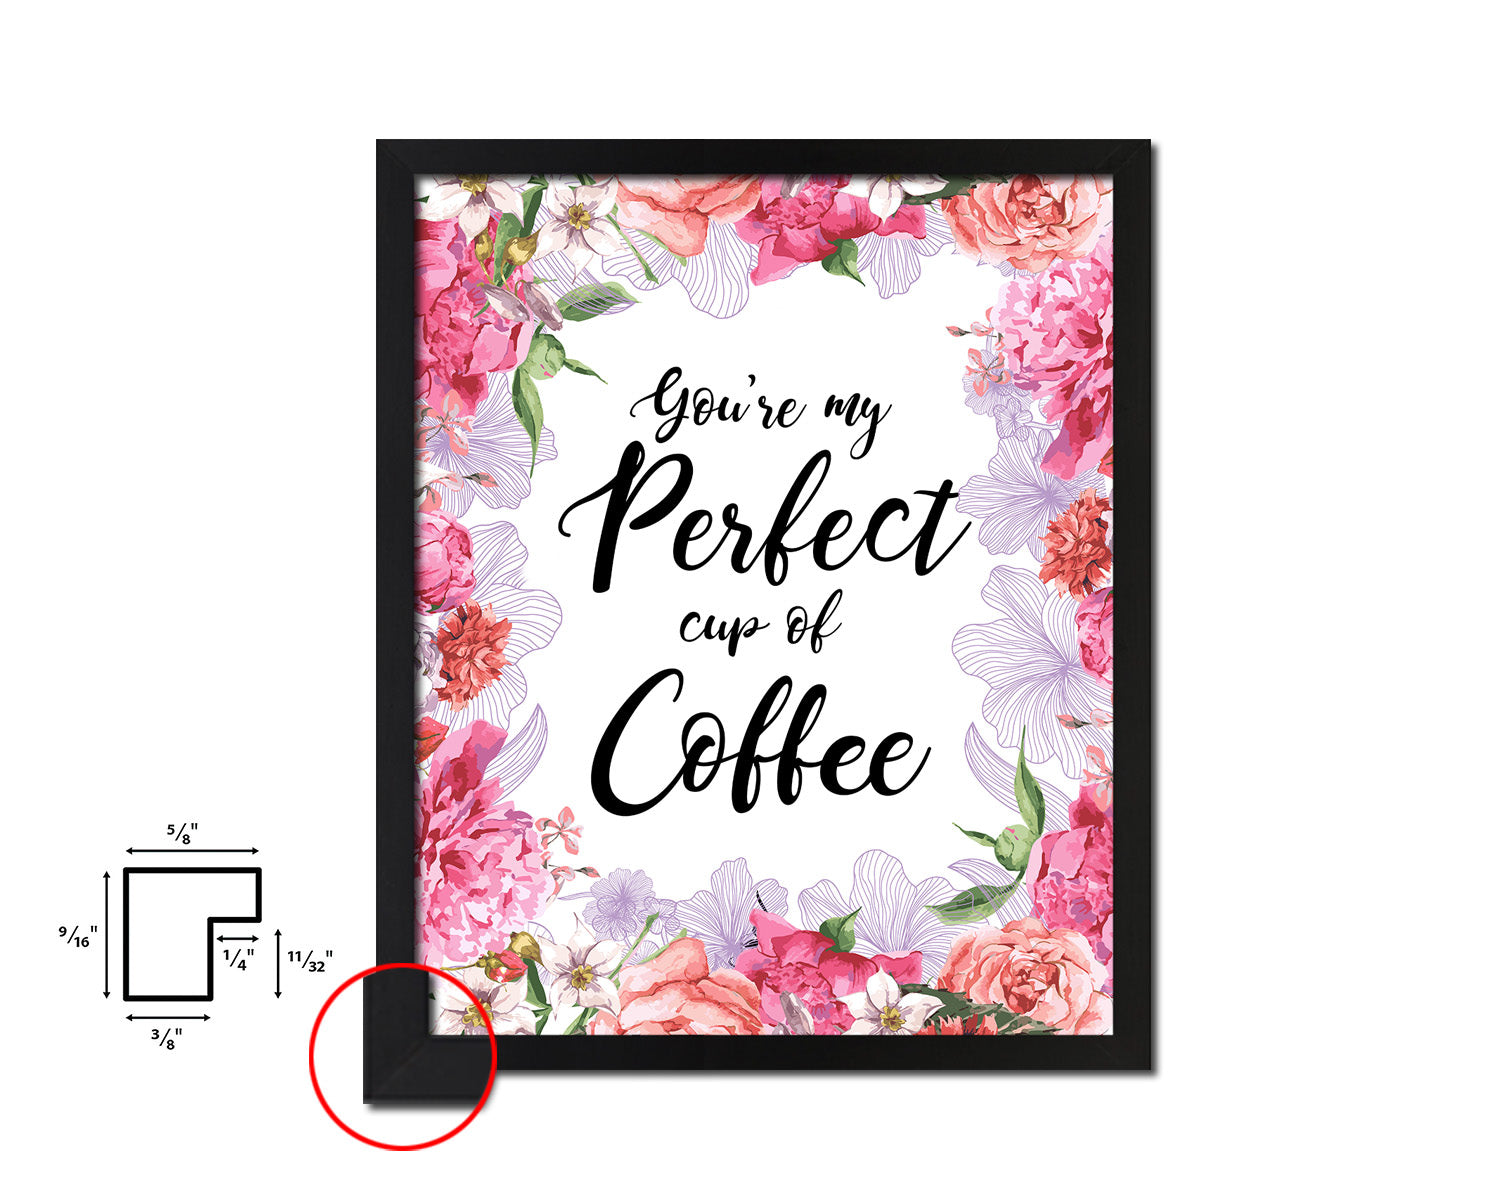 You're my perfect cup of coffee Quote Framed Artwork Print Wall Decor Art Gifts